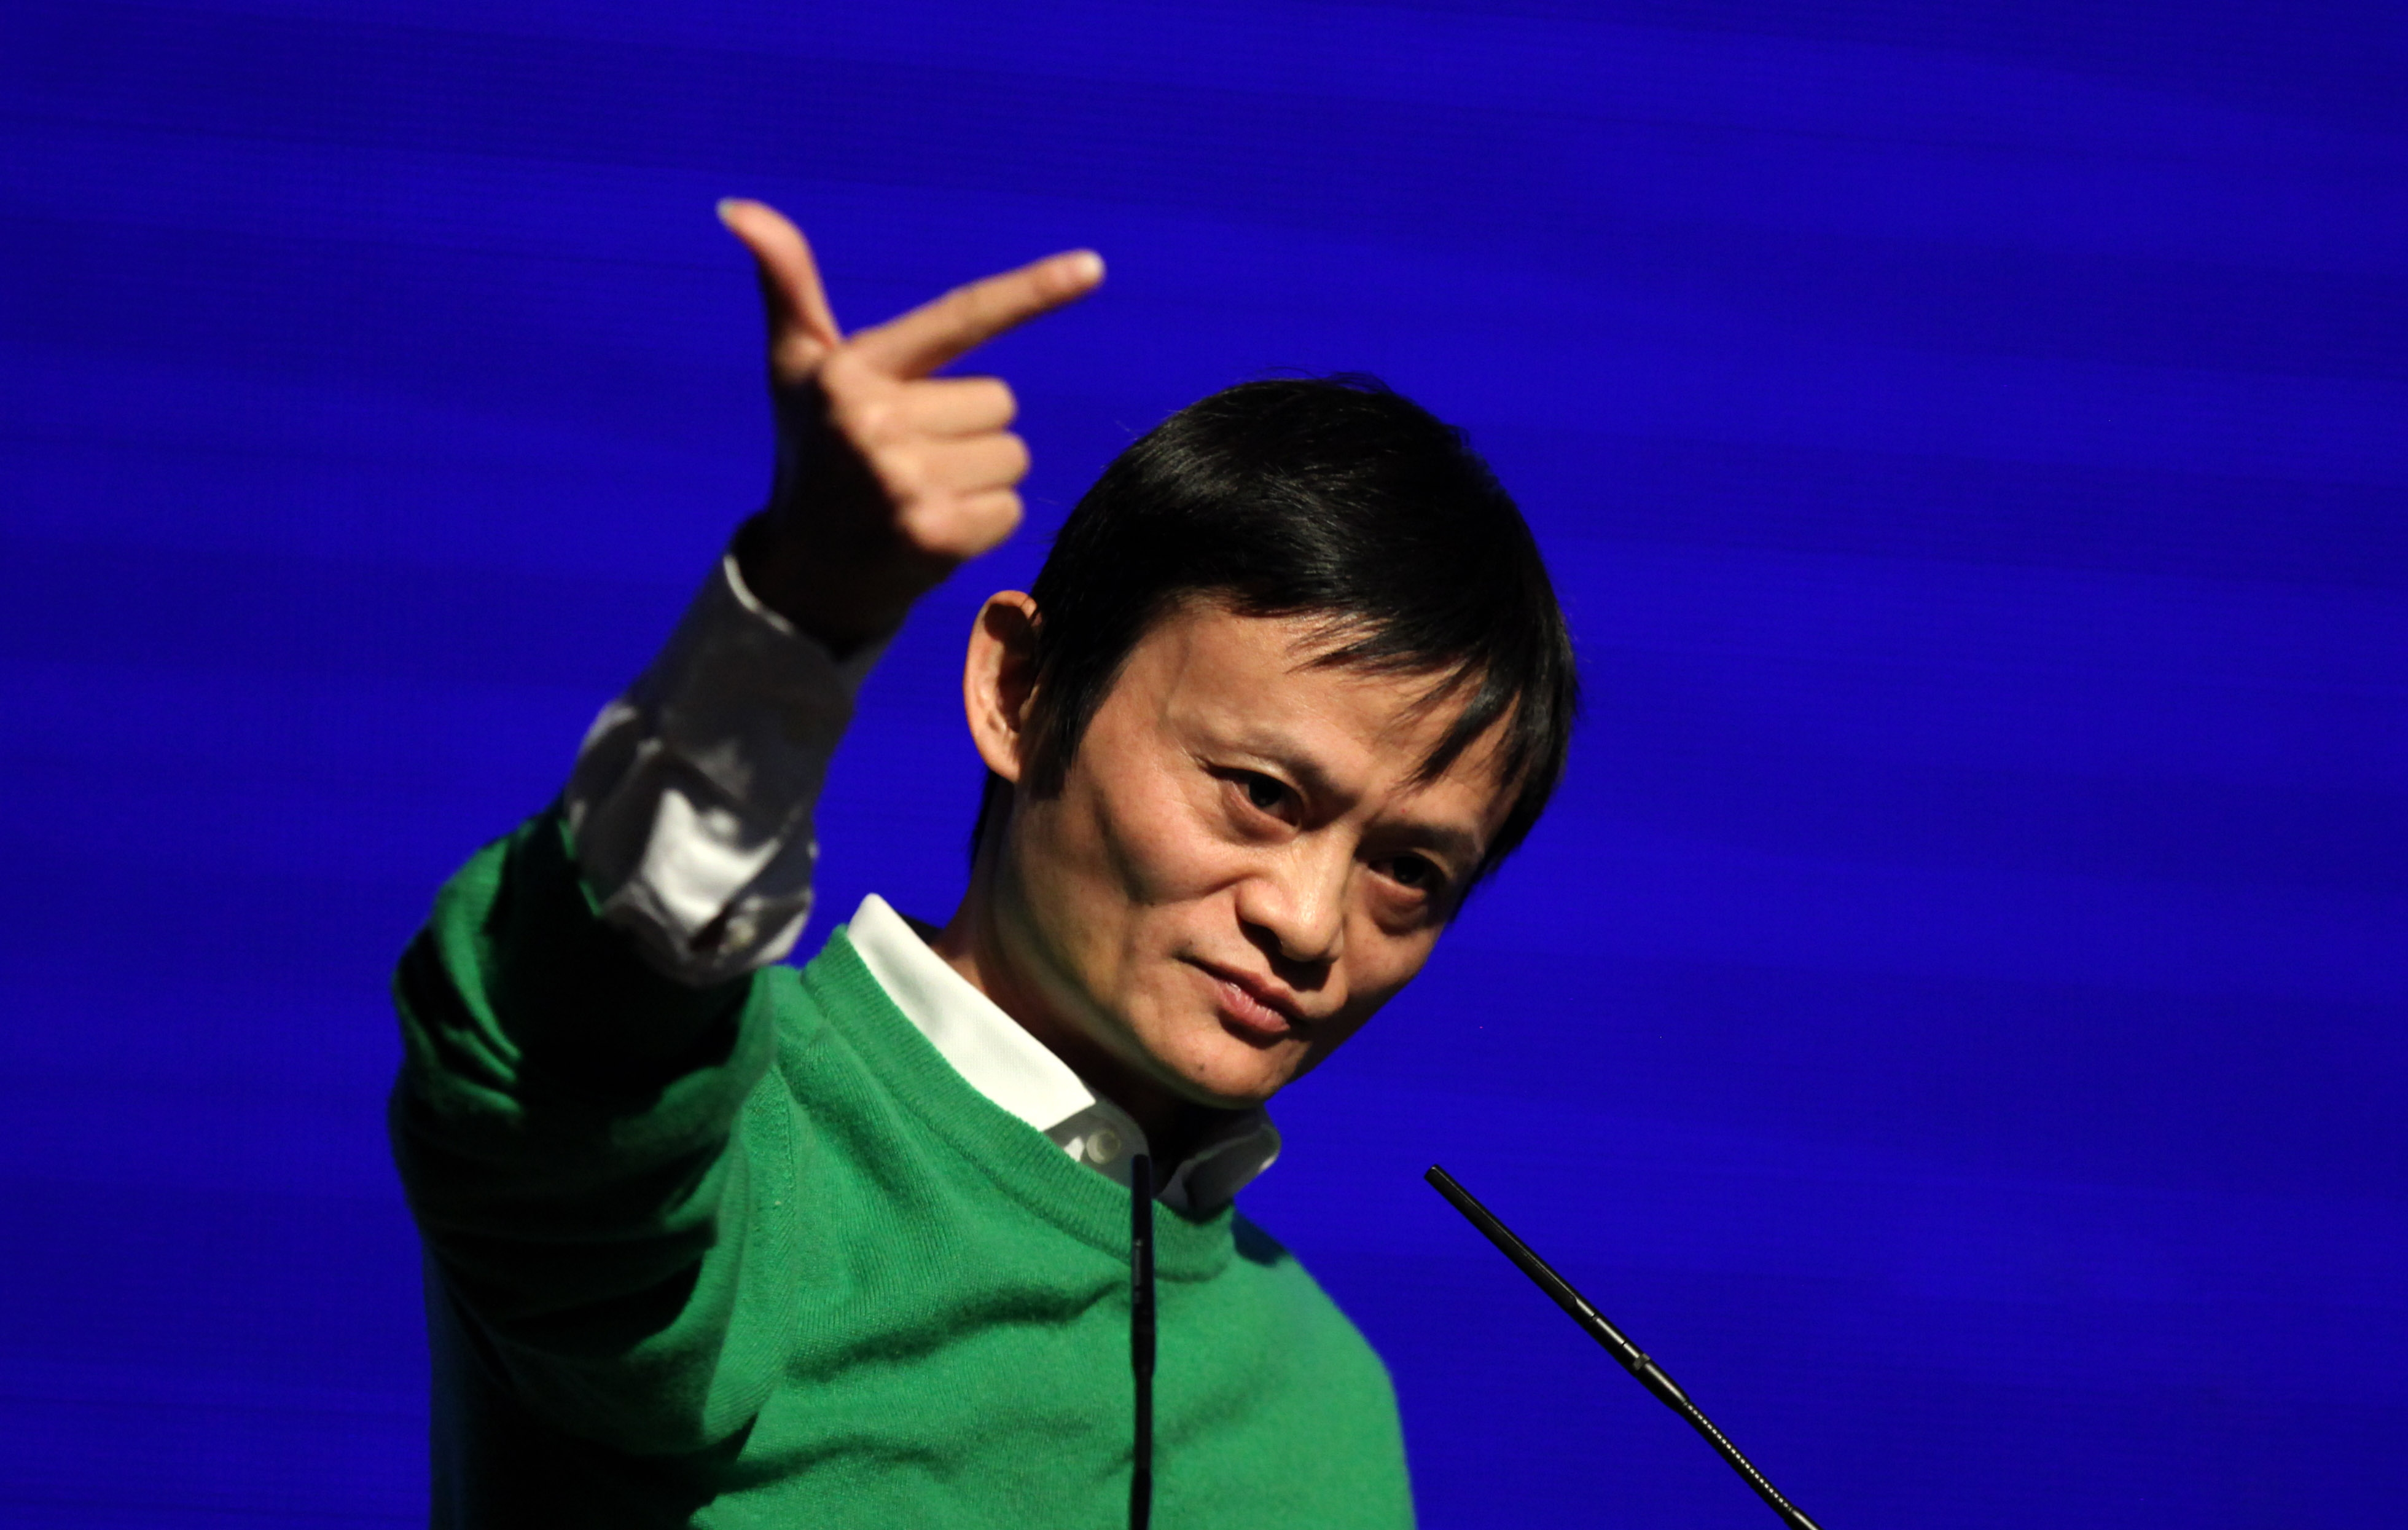 Boom! Goes the dynamite. Jack Ma of Alibaba Group is the poster child of the new, high tech, Chinese... [+] entrepreneur. The government wants to throw more money at the next Jack Ma, of which there will undoubtedly be thousands.